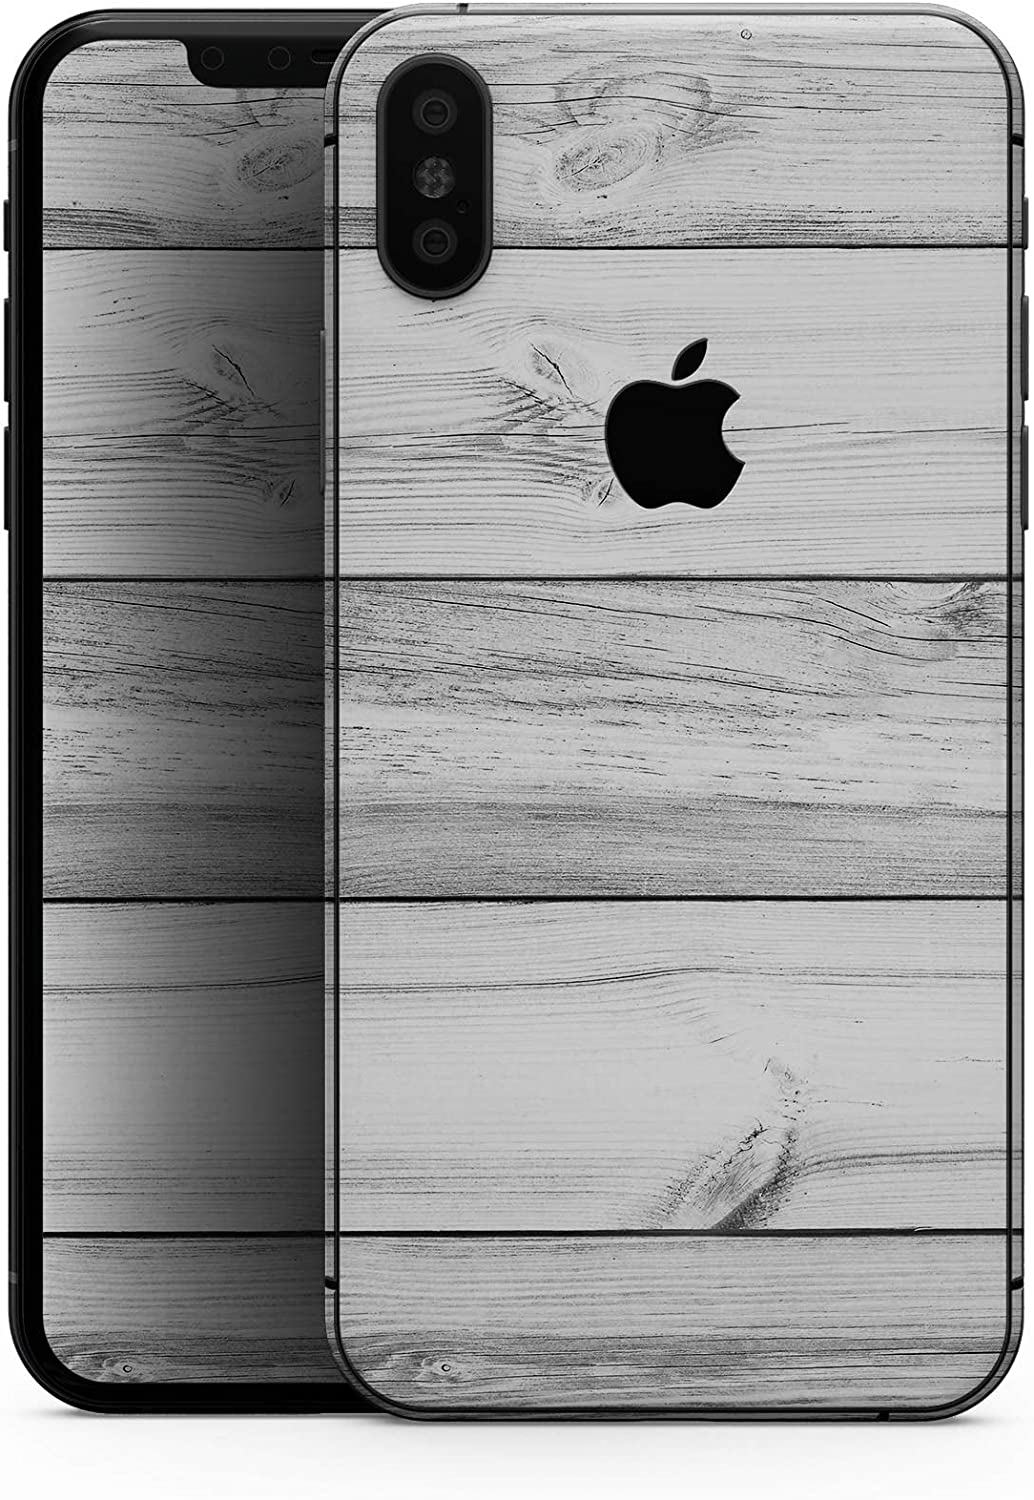 White & Gray Wood Planks - Design Skinz Premium Skin Decal Wrap for The iPhone 5s or SE